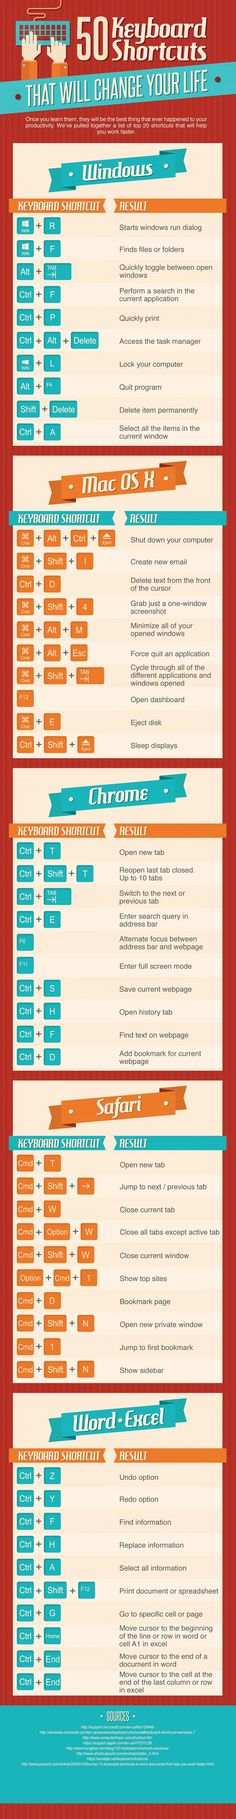 A handy infographic offering keyboard shortcuts that will make your computer experience so much easier.